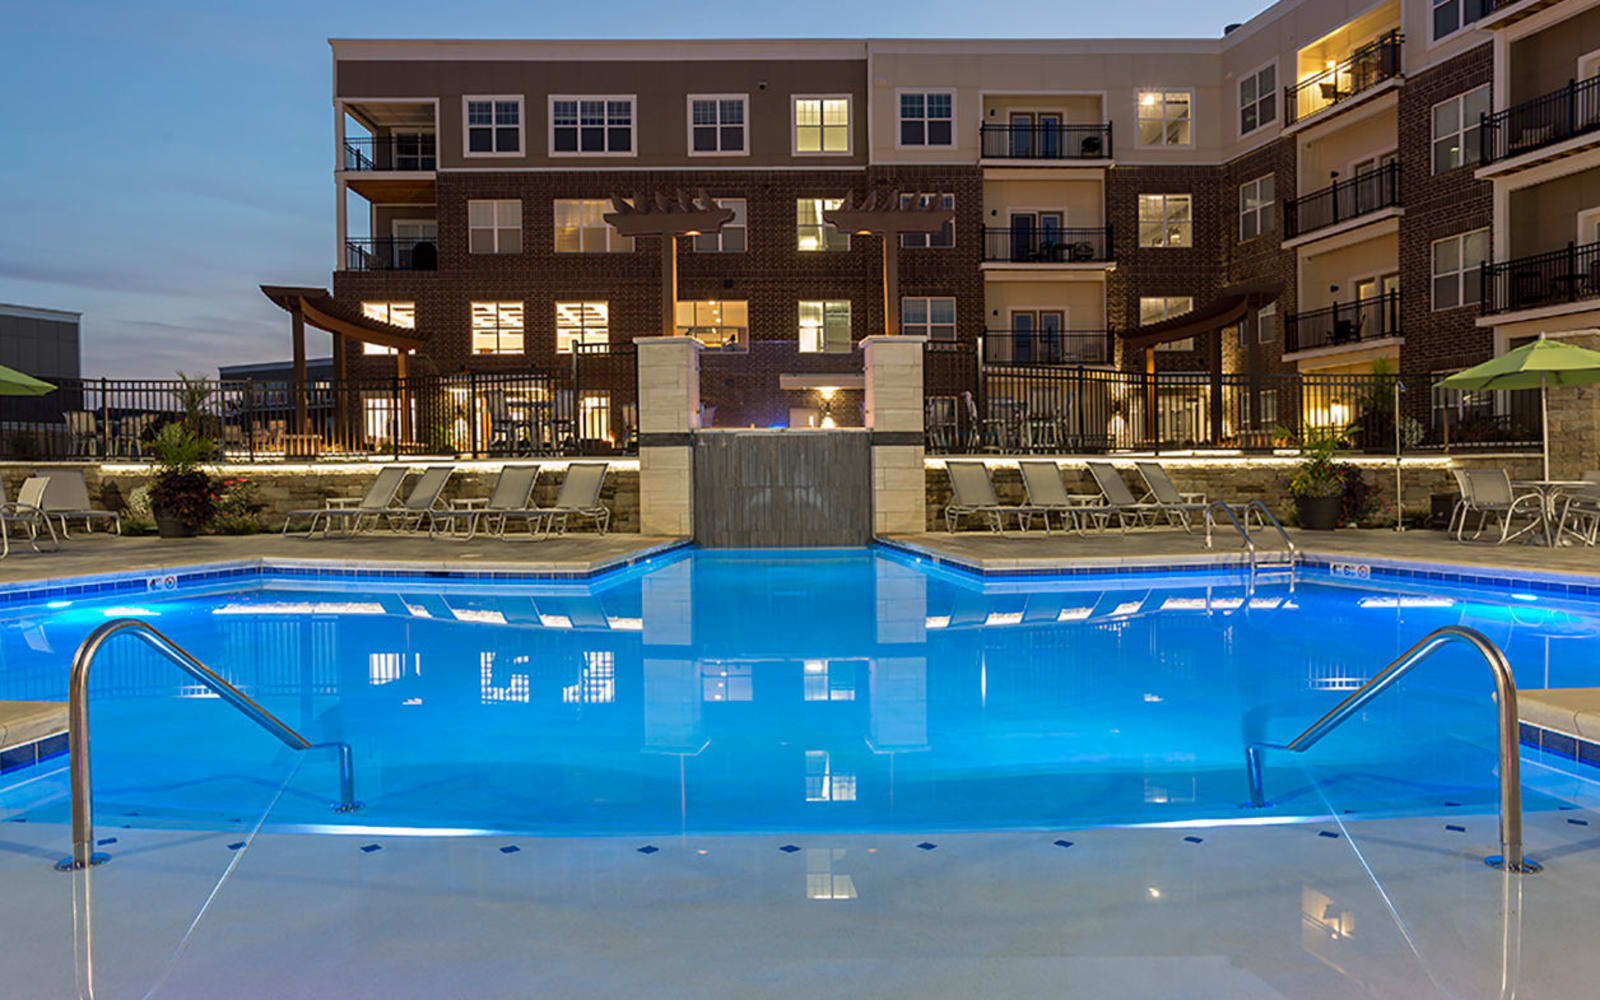 Beautiful swimming pool at Allure Apartments in Centerville, Ohio